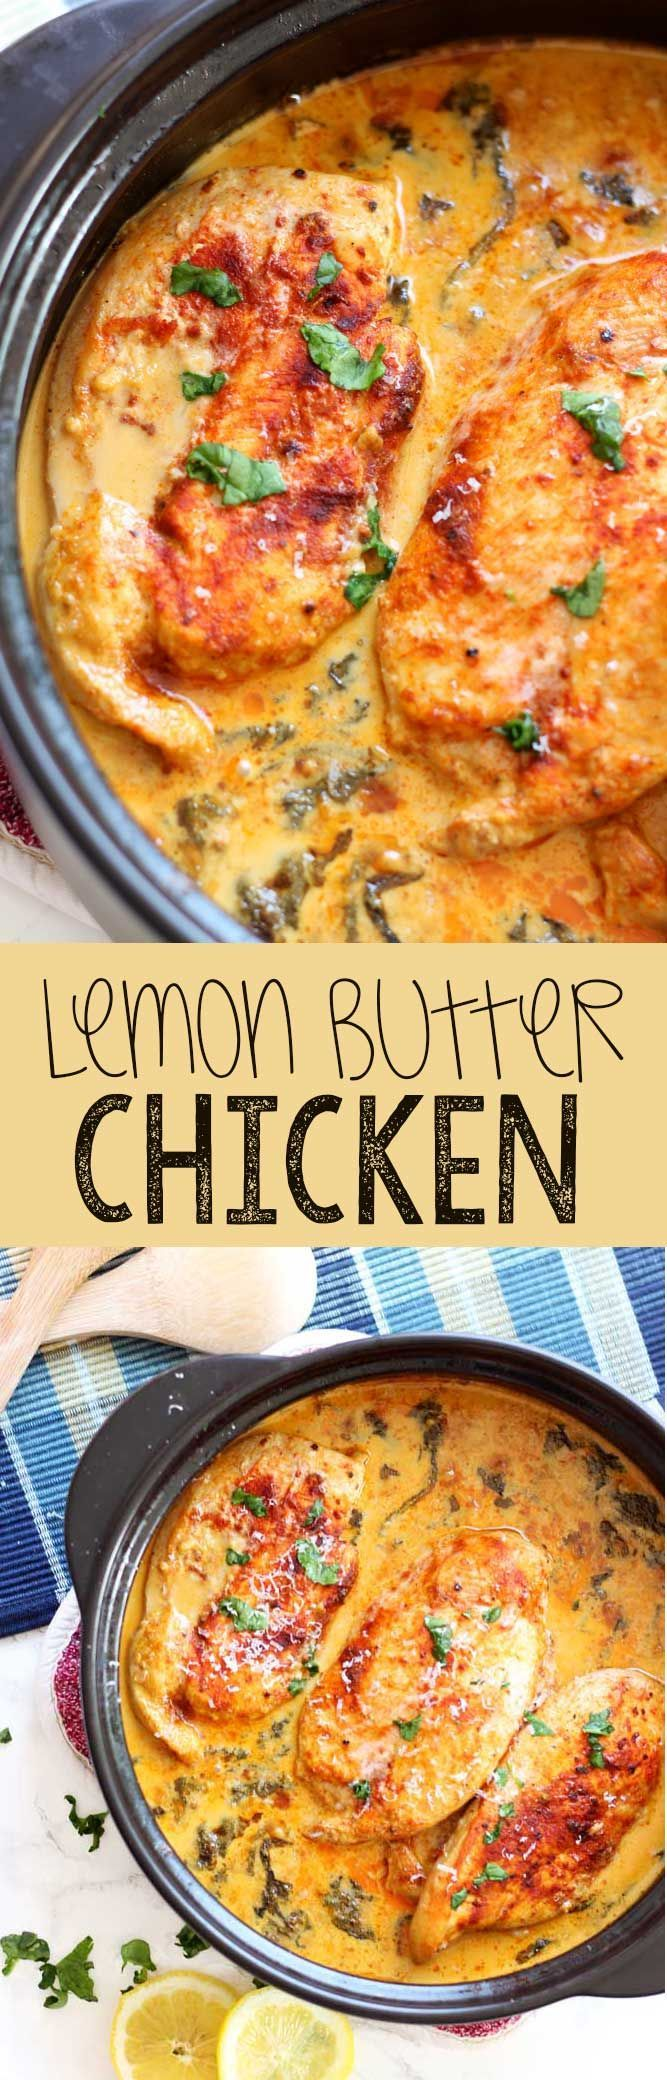 Easy Chicken Dinner, This Lemon Butter Chicken Is Savory, Mouthwatering,  And Easy To